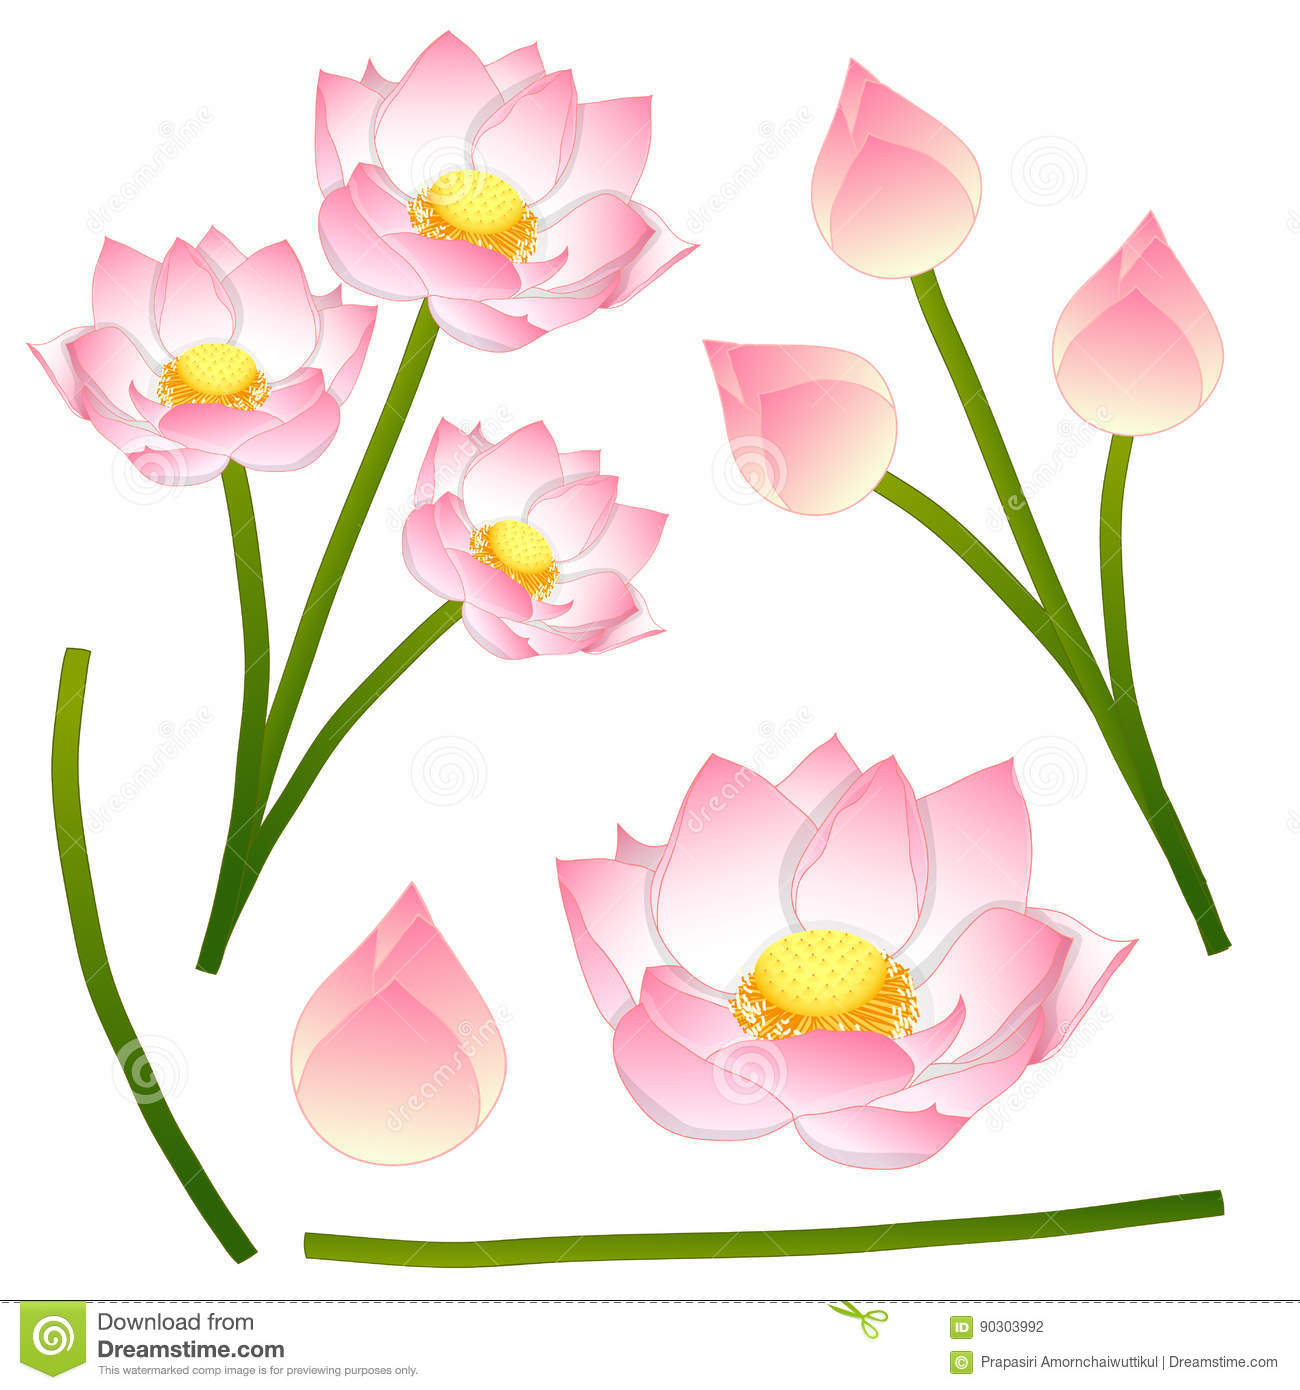 Nelumbo nucifera indian lotus sacred lotus bean of india nelumbo nucifera indian lotus sacred lotus bean of india egyptian bean izmirmasajfo